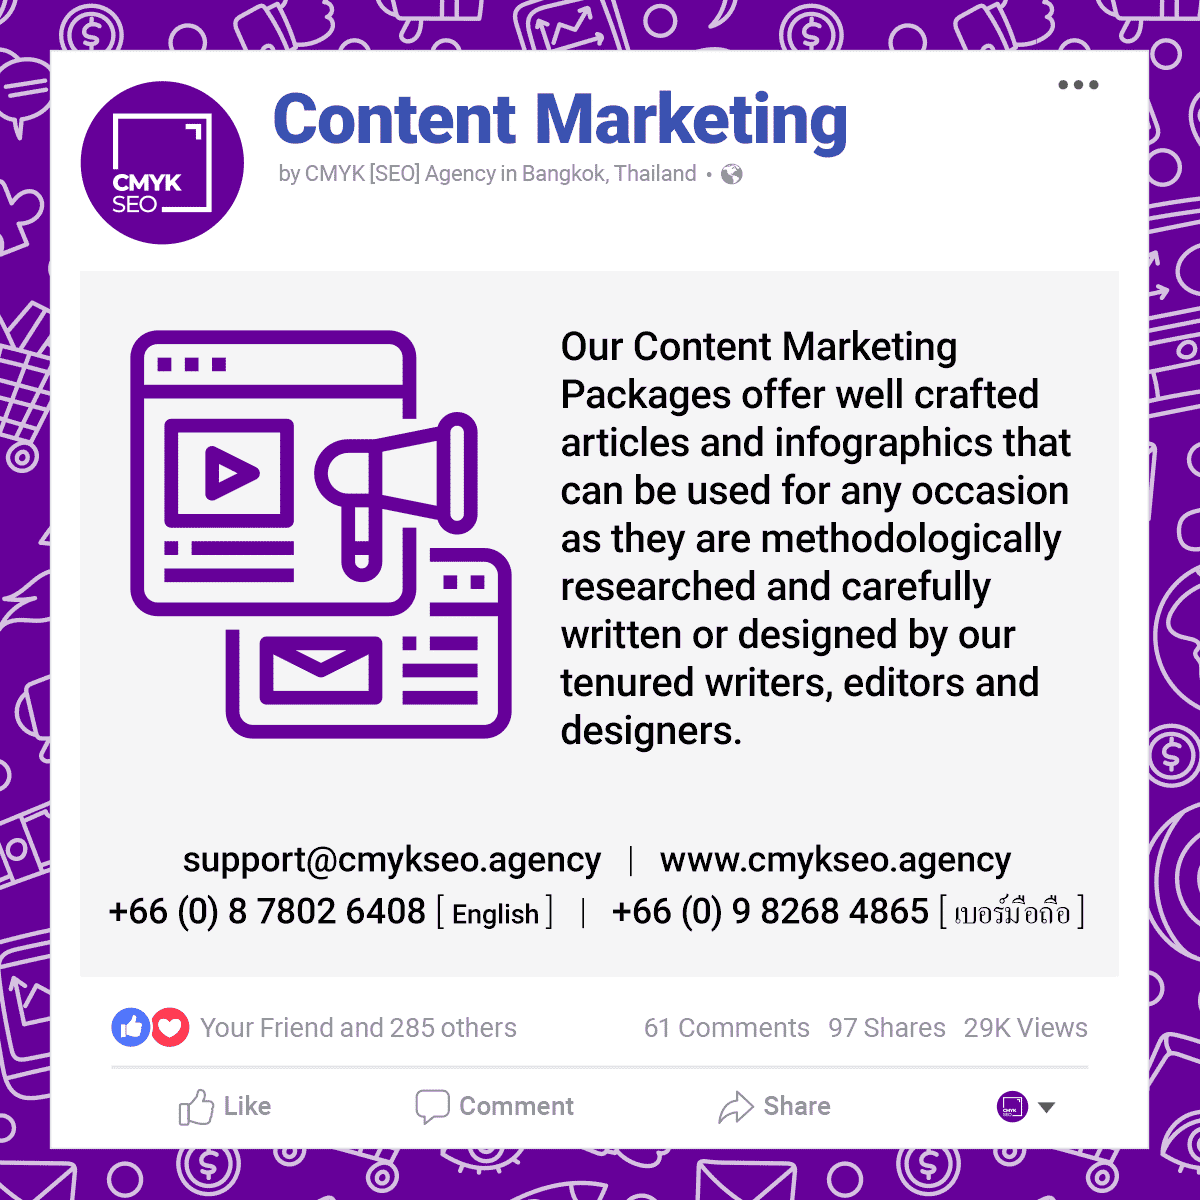 Content Marketing Services by CMYK SEO Agency in Bangkok Thailand | CMYK [SEO]: Bangkok SEO/SEM Agency